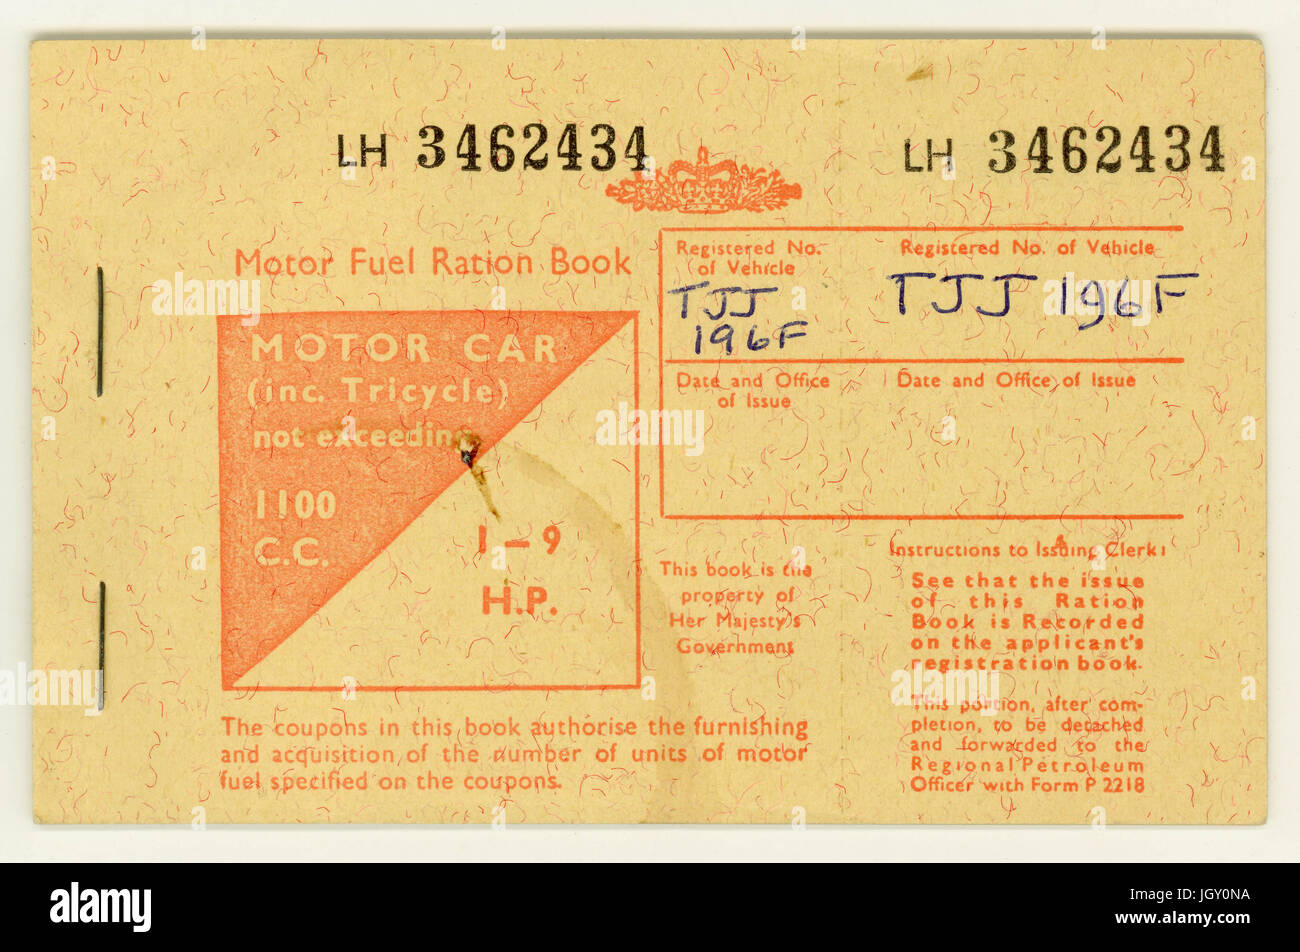 British Motor fuel ration book, for a motor car 1100 c.c.1973 Stock Photo